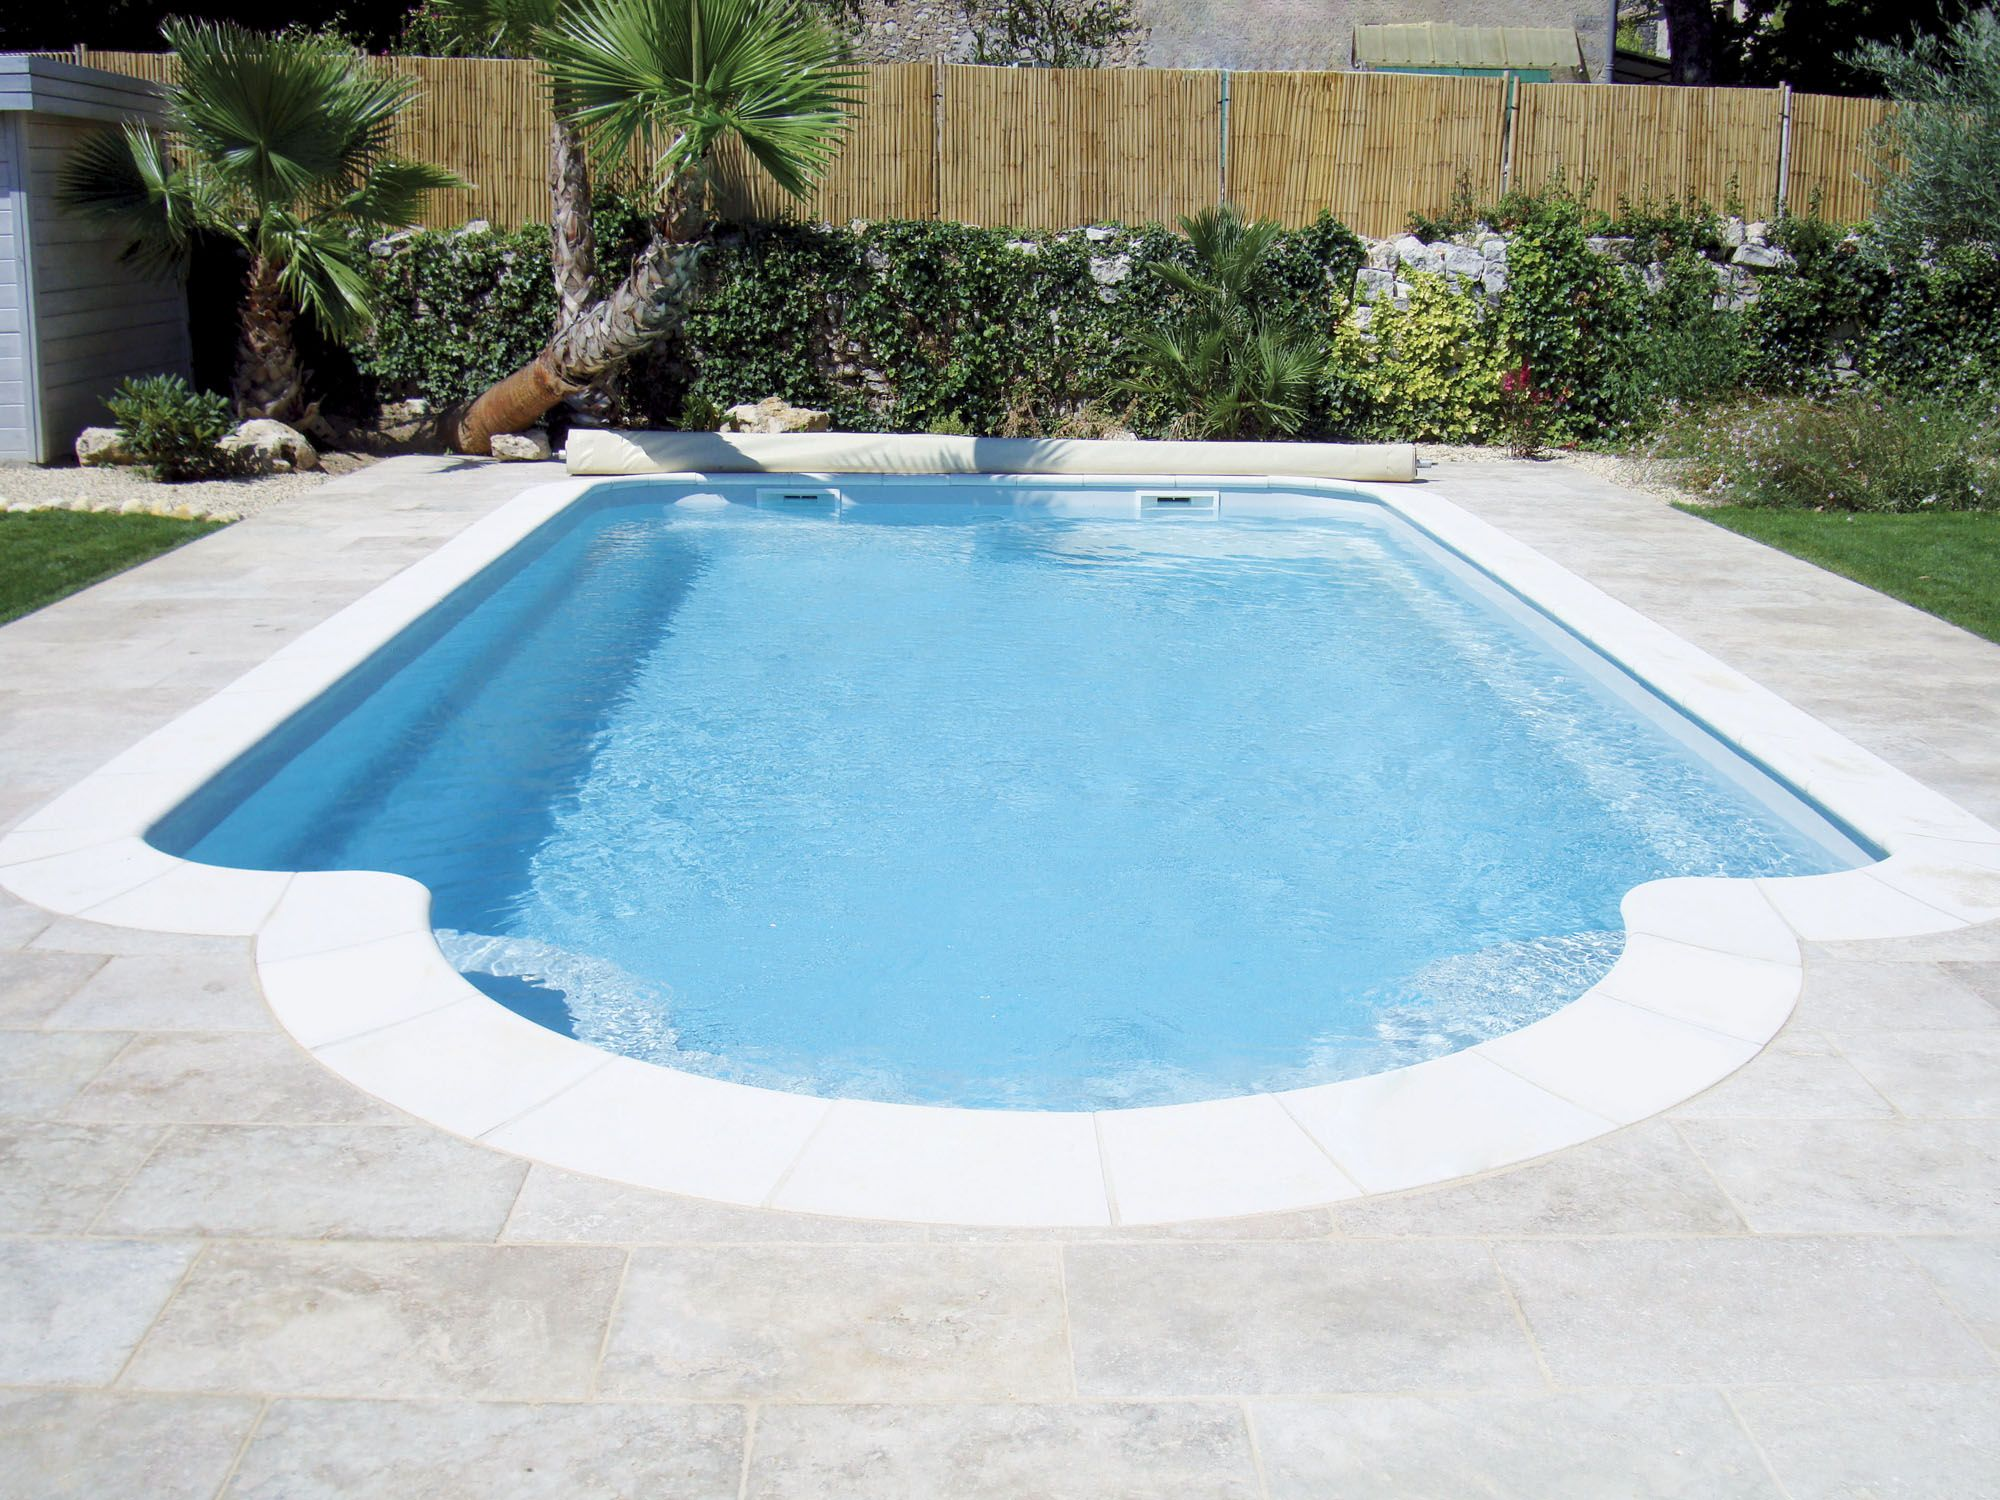 Piscine coque polyester arp ge fabrication fran aise for Polyester piscine prix